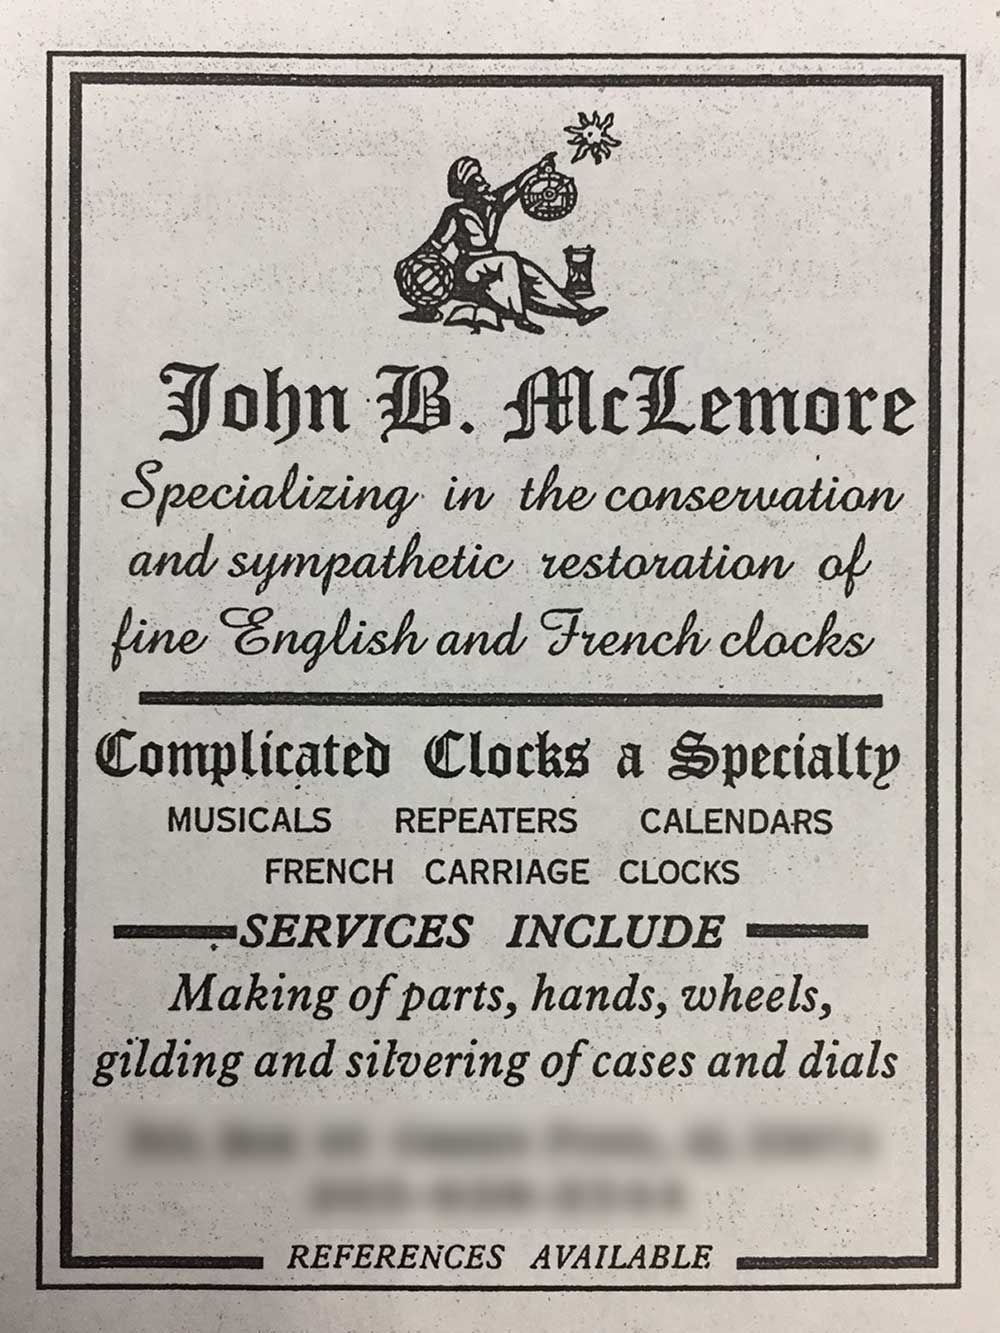 John B. McLemore's 1999 advertisement in the NAWCC's Mart & Highlights publication.